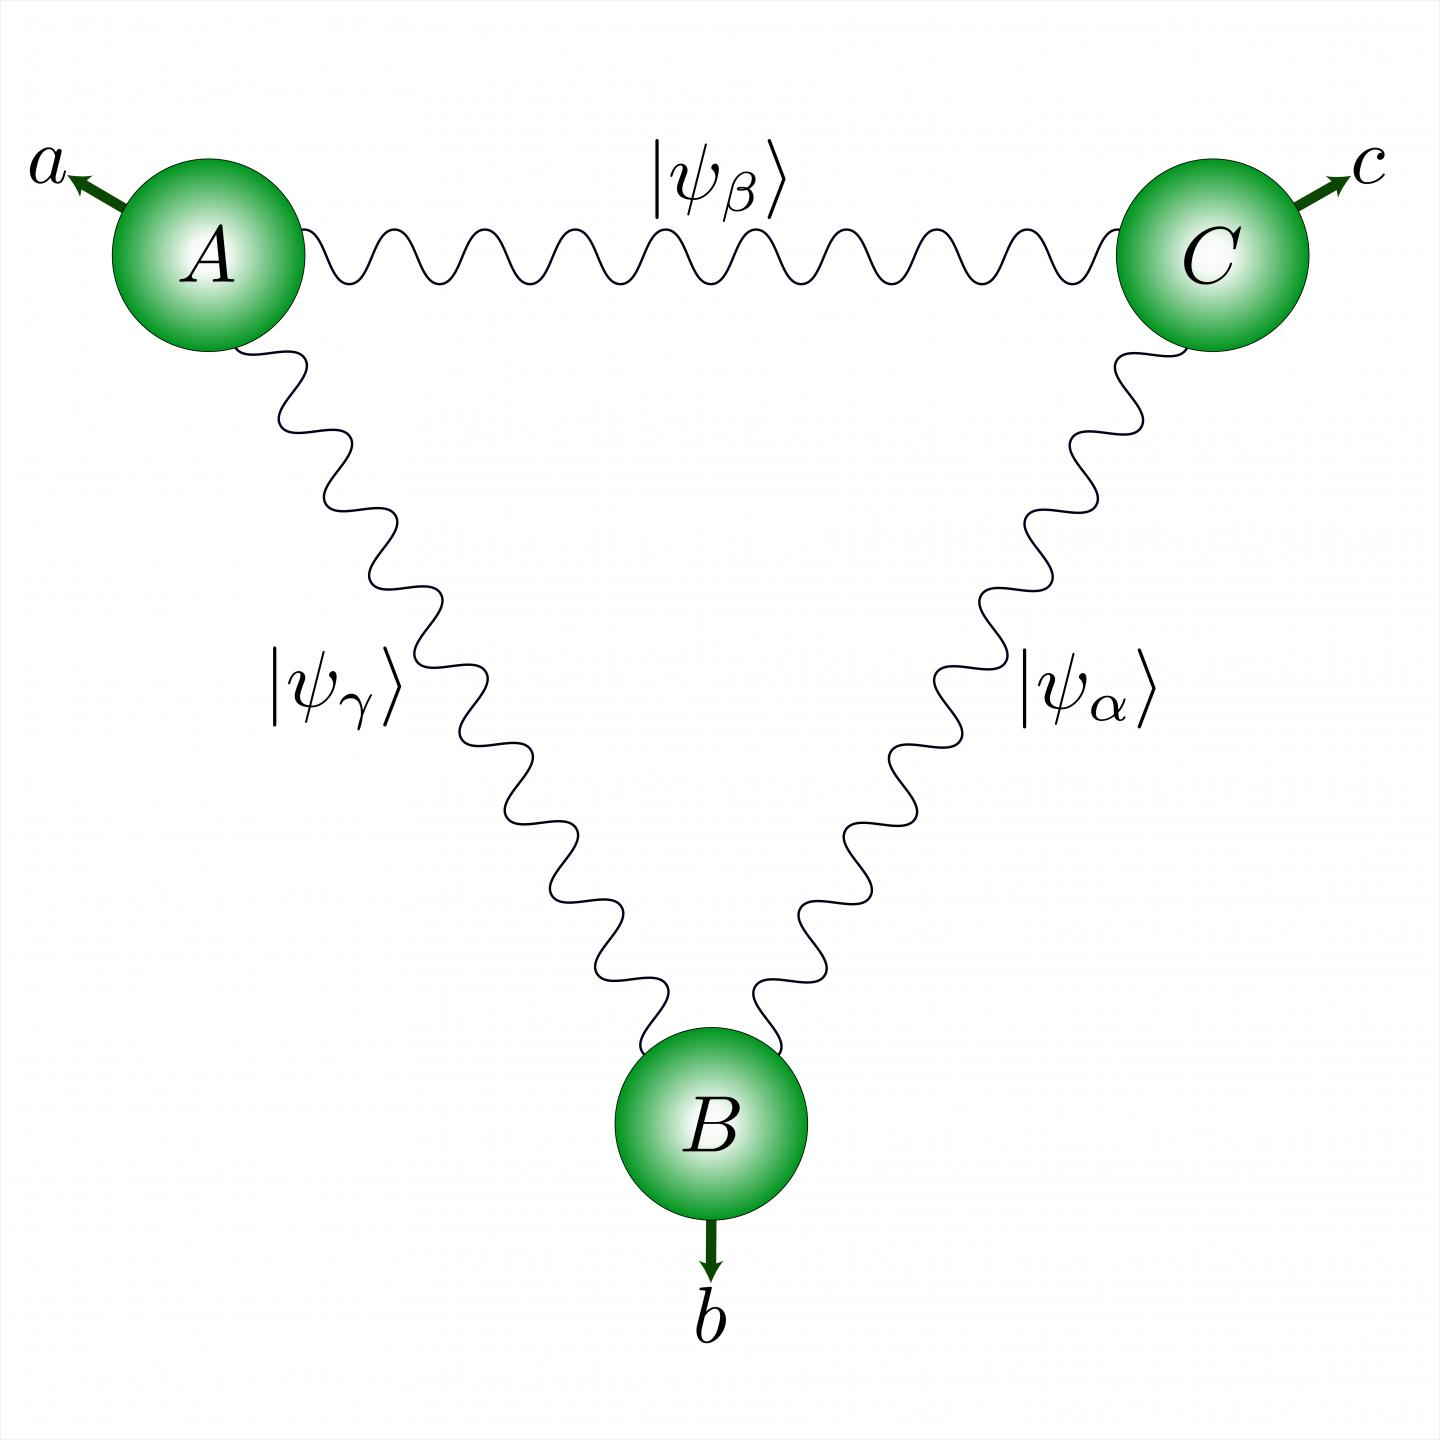 A quantum network with a triangular structure allows for a fundamentally novel type of quantum correlations. Courtesy of UNIGE.